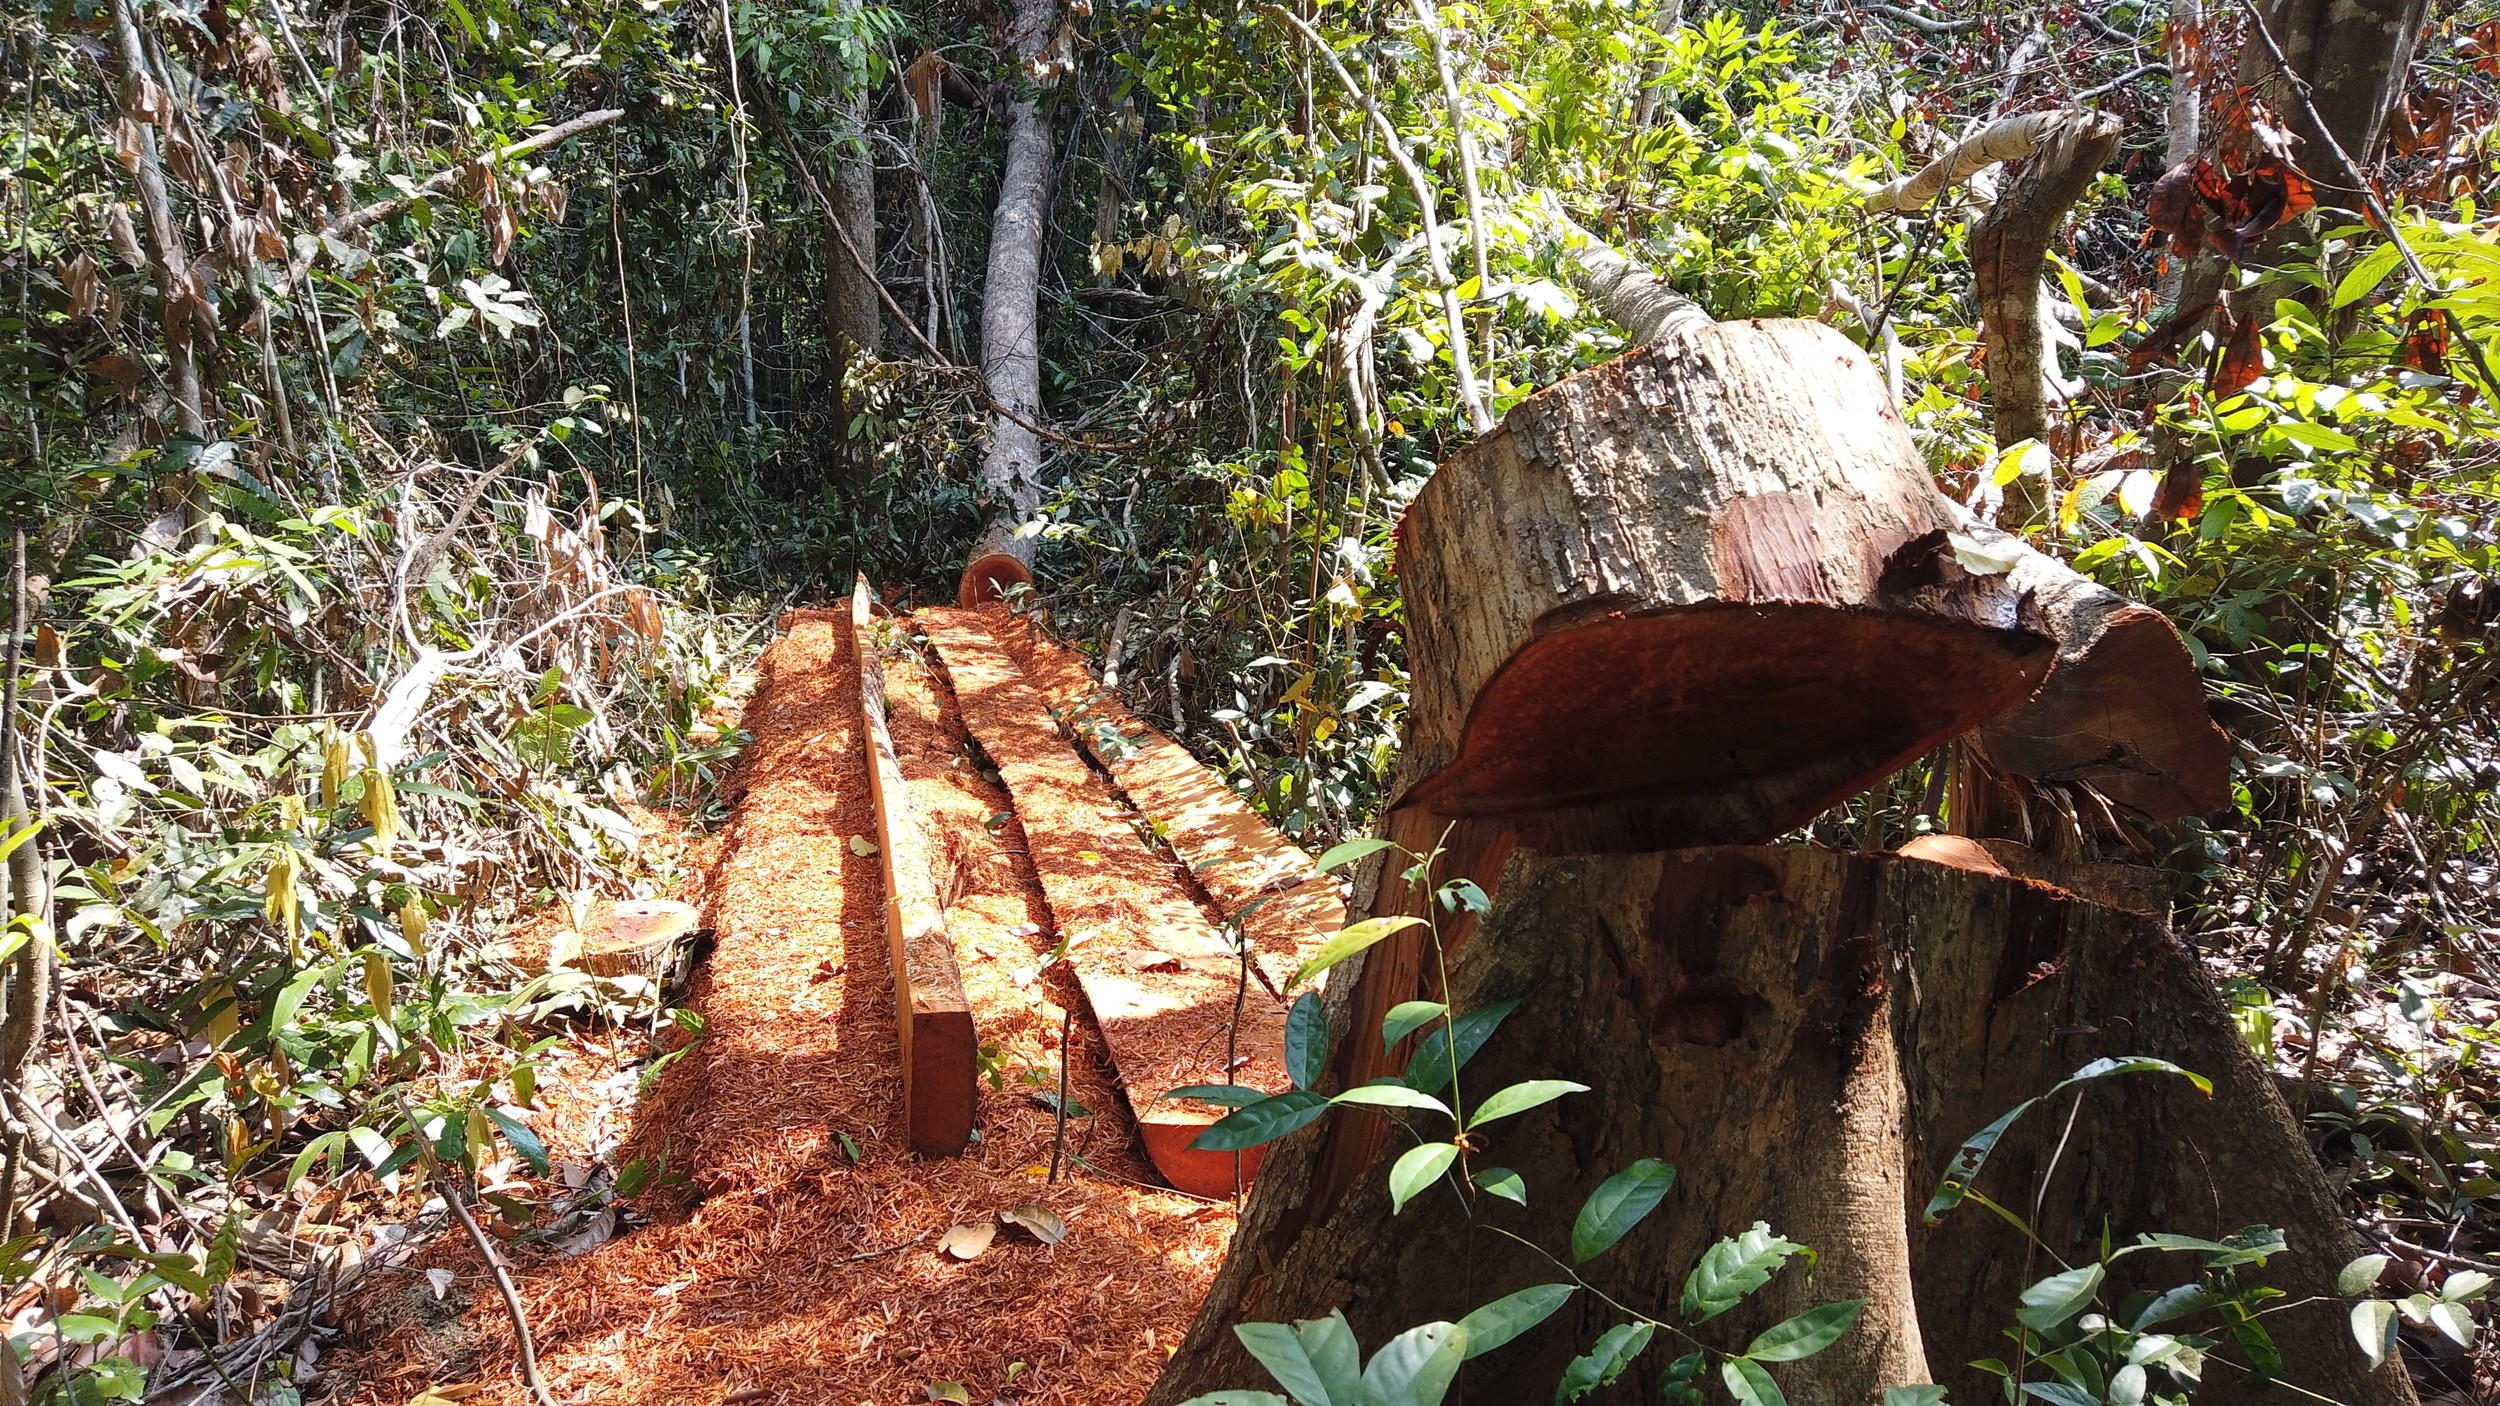 An illegally felled old-growth tree in Prey Lang forest, April 22, 2020. Credit: Lovers of the Environment